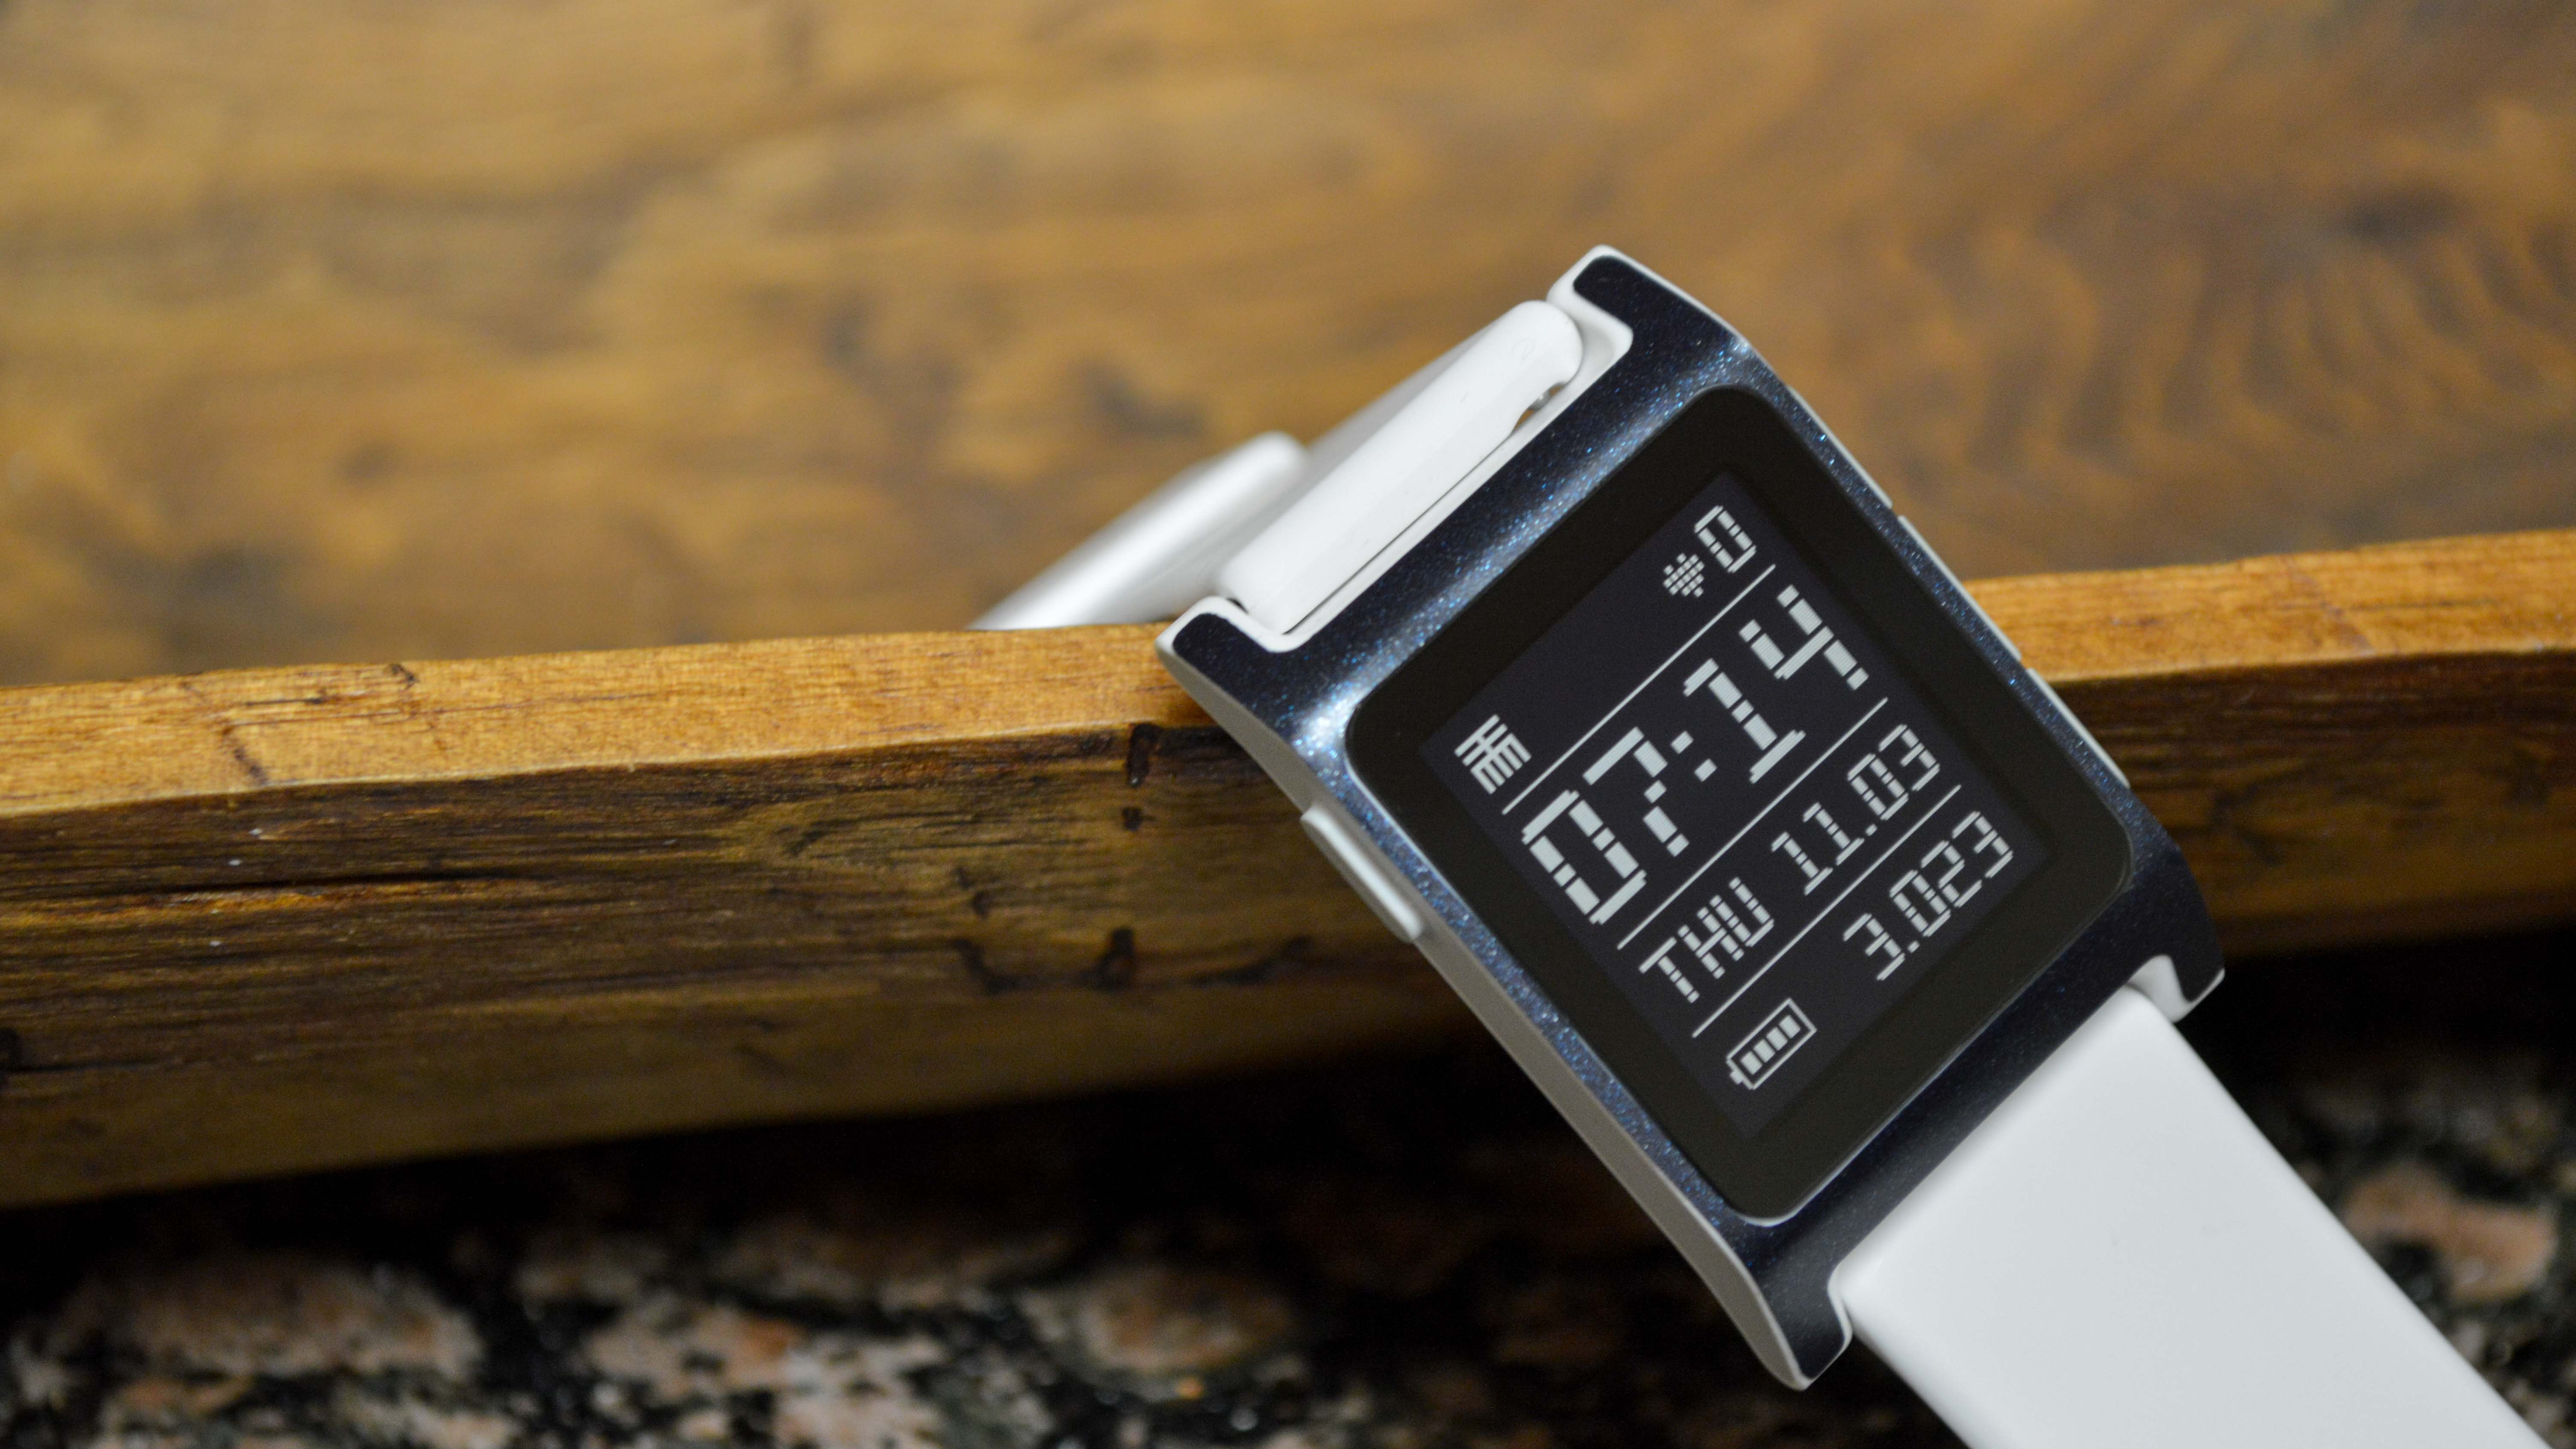 Pebble 2 Watchface TTMM88